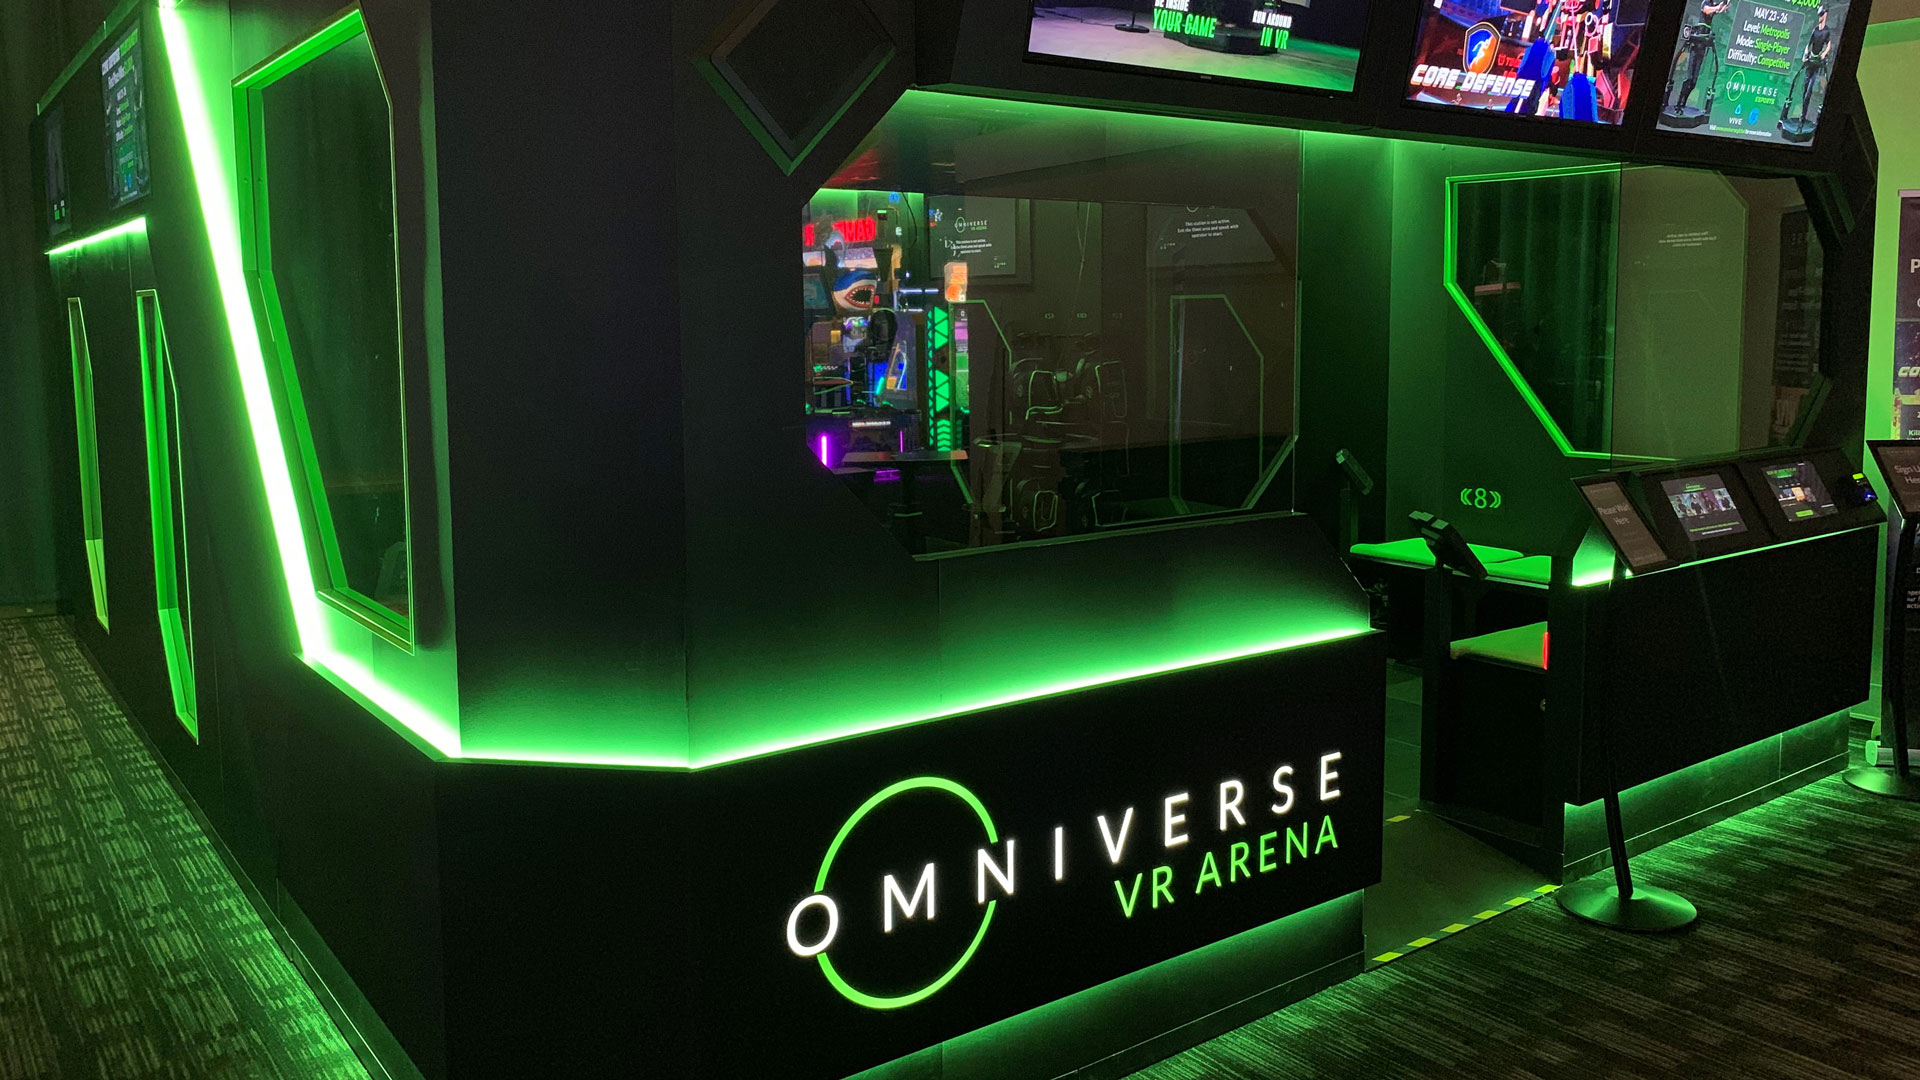 Virtuix Debuts 'VR Arena' Attraction at Dave & Buster's Austin Location